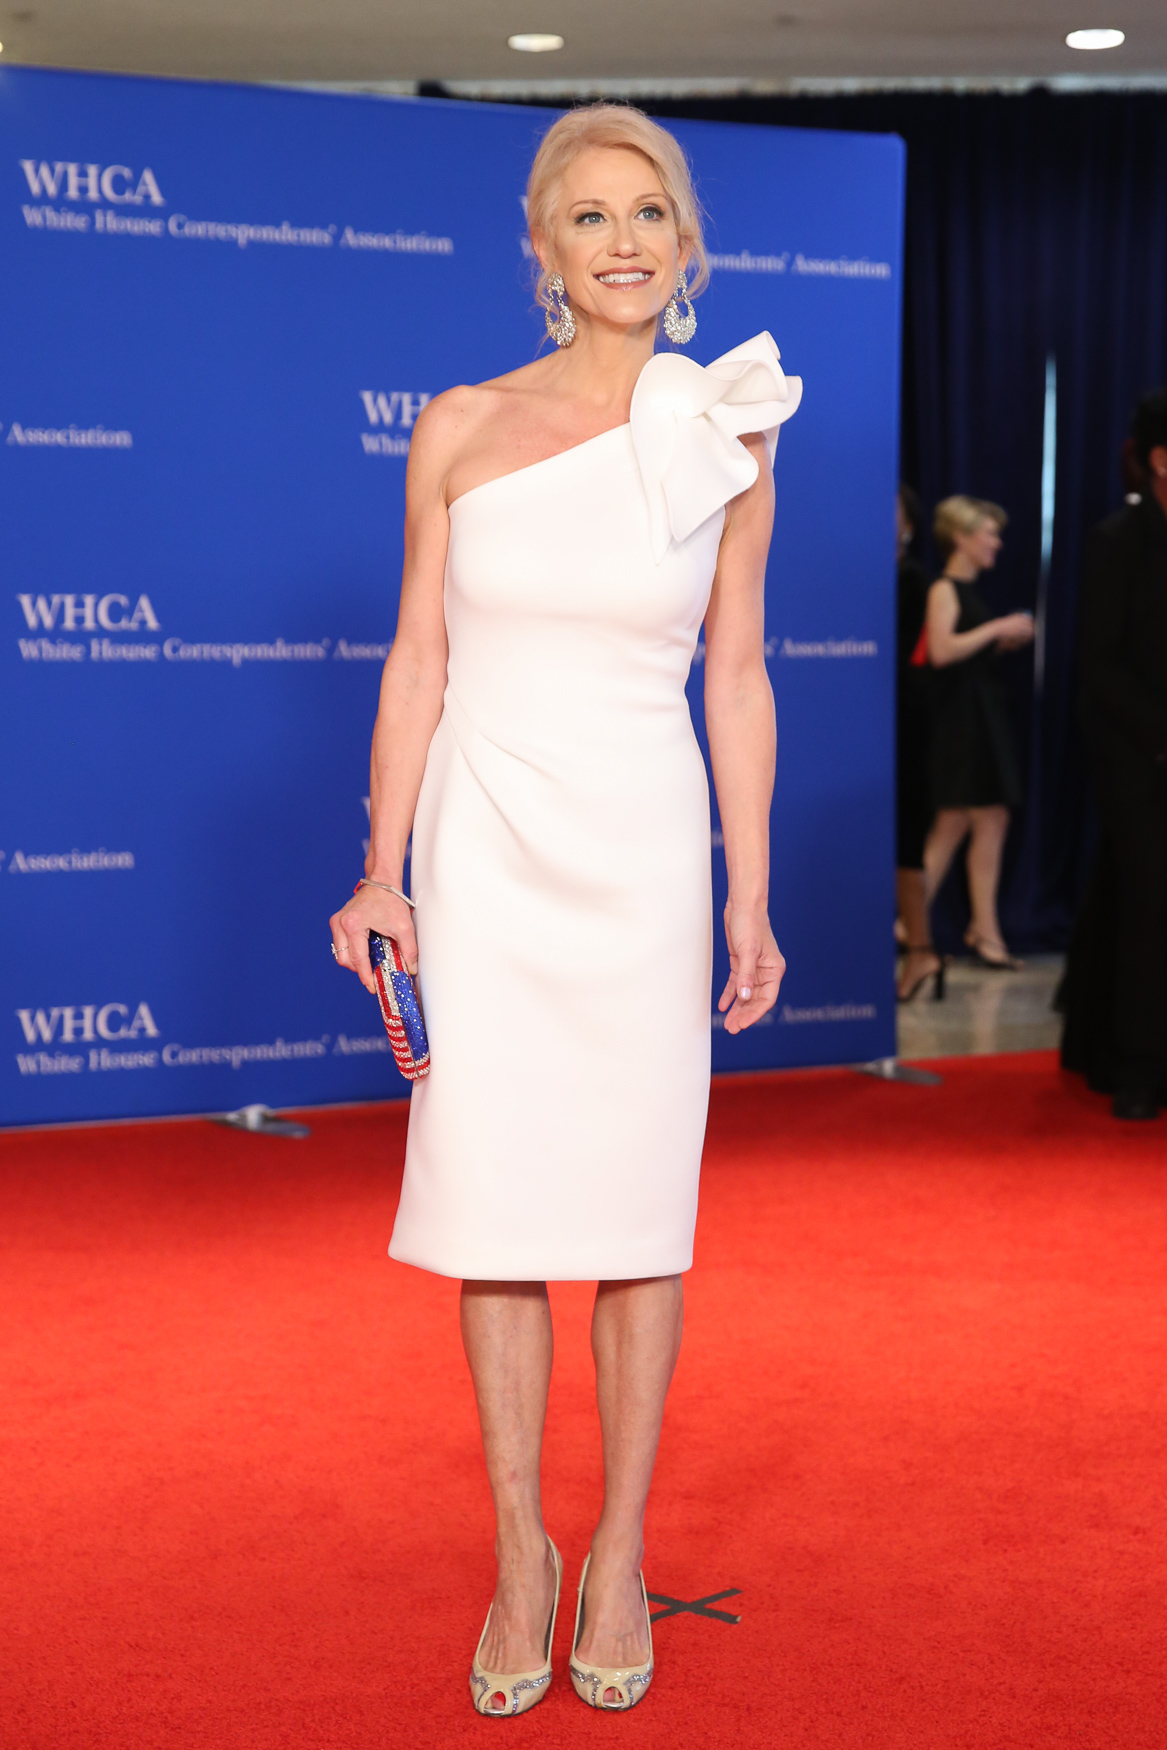 After the red carpet ended, several photographers were huddled backstage wondering what happened to Kellyanne Conway. She looks well-rested and put together. Could she, like Melania, have a body double?! (Kidding. Sort of.){&nbsp;}(Amanda Andrade-Rhoades/DC Refined)<p></p><p></p><p></p>